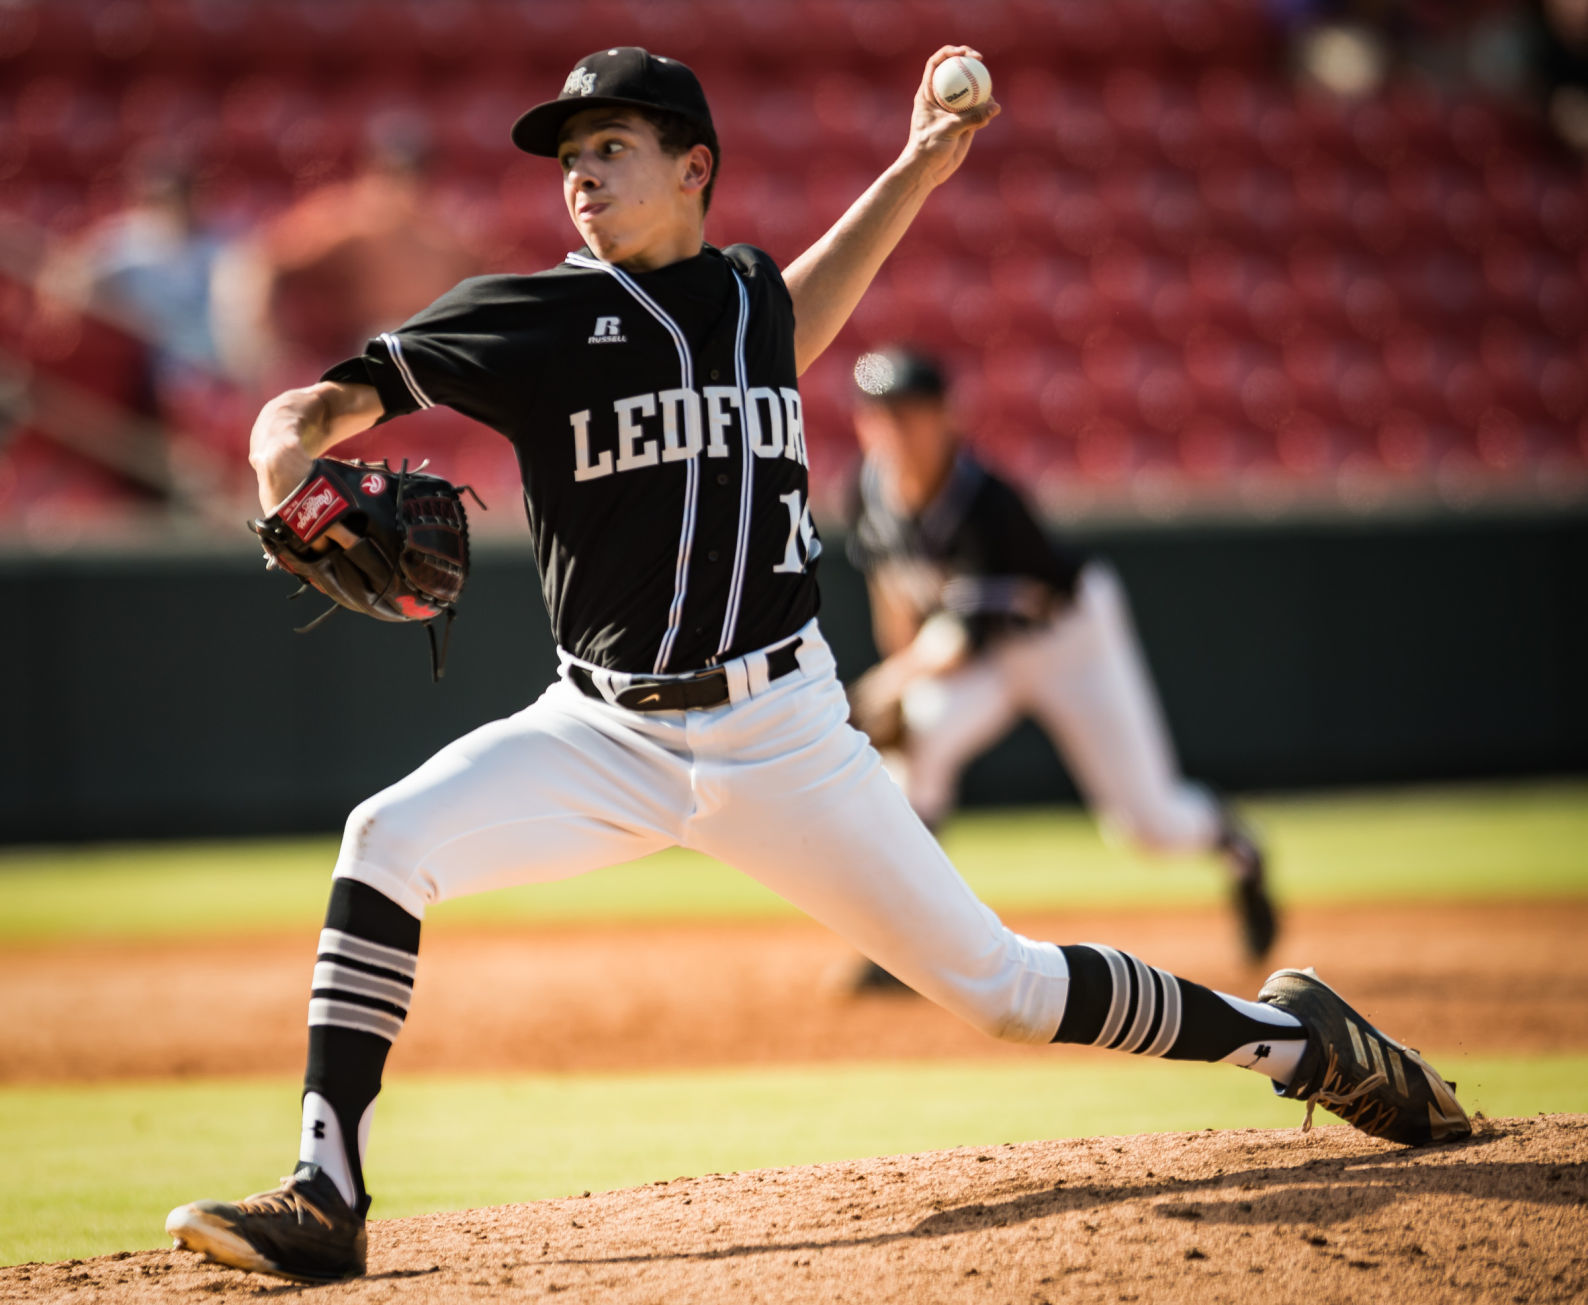 First Game of Ledford Baseball State Championship